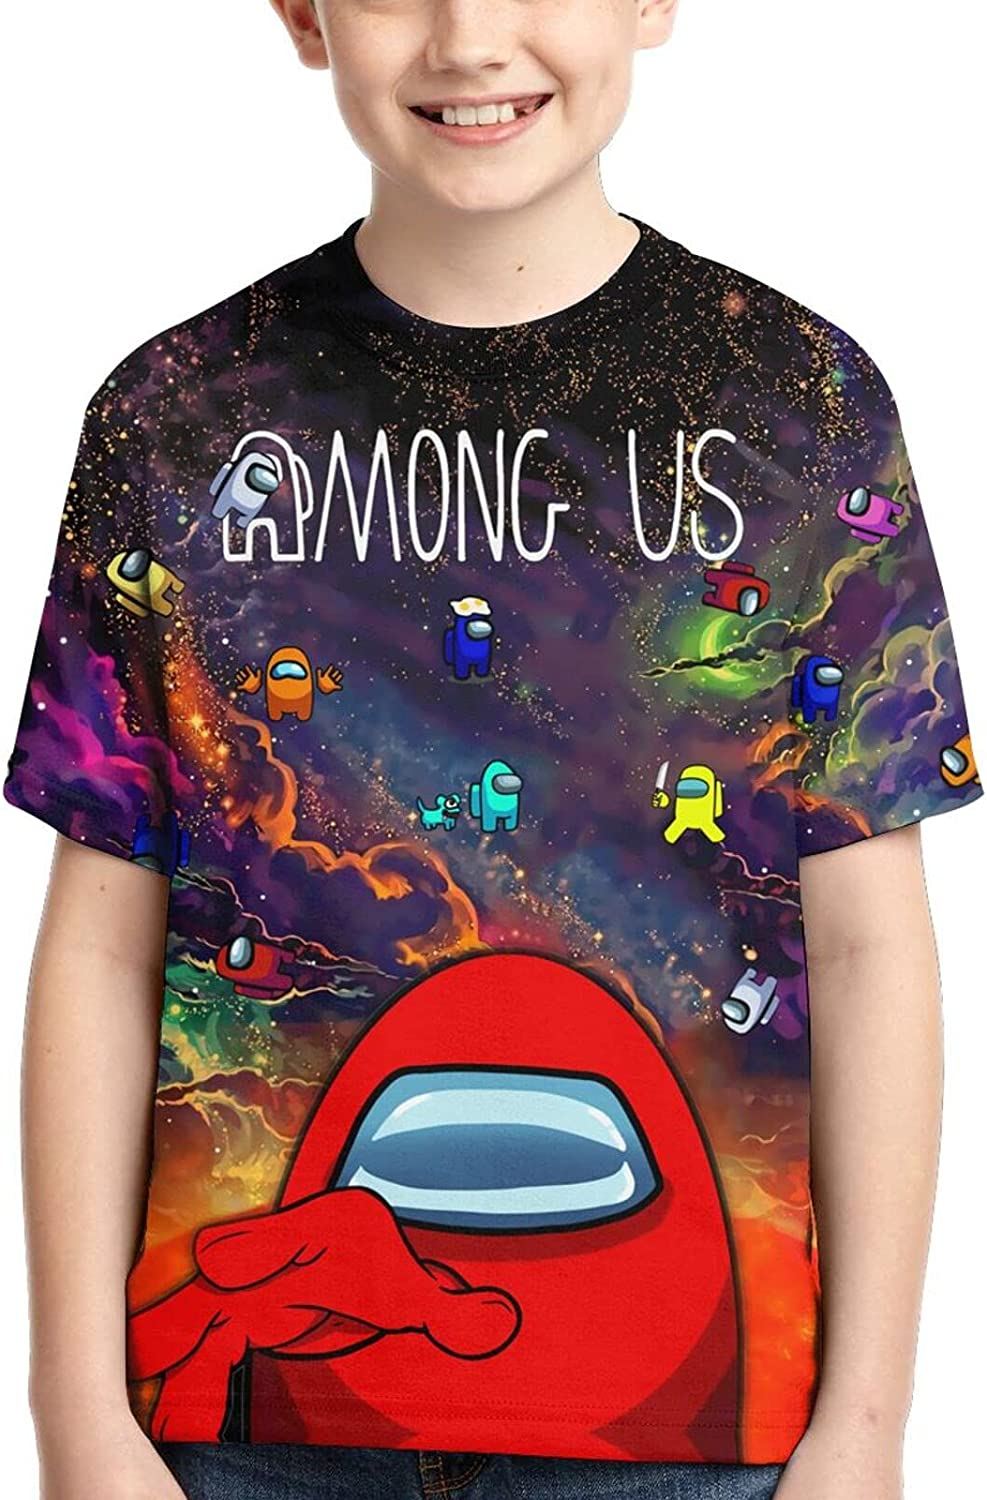 Boys and Girls Shirt,Fashion Short Sleeve Tops T-Shirt for Kids and Teens Youth